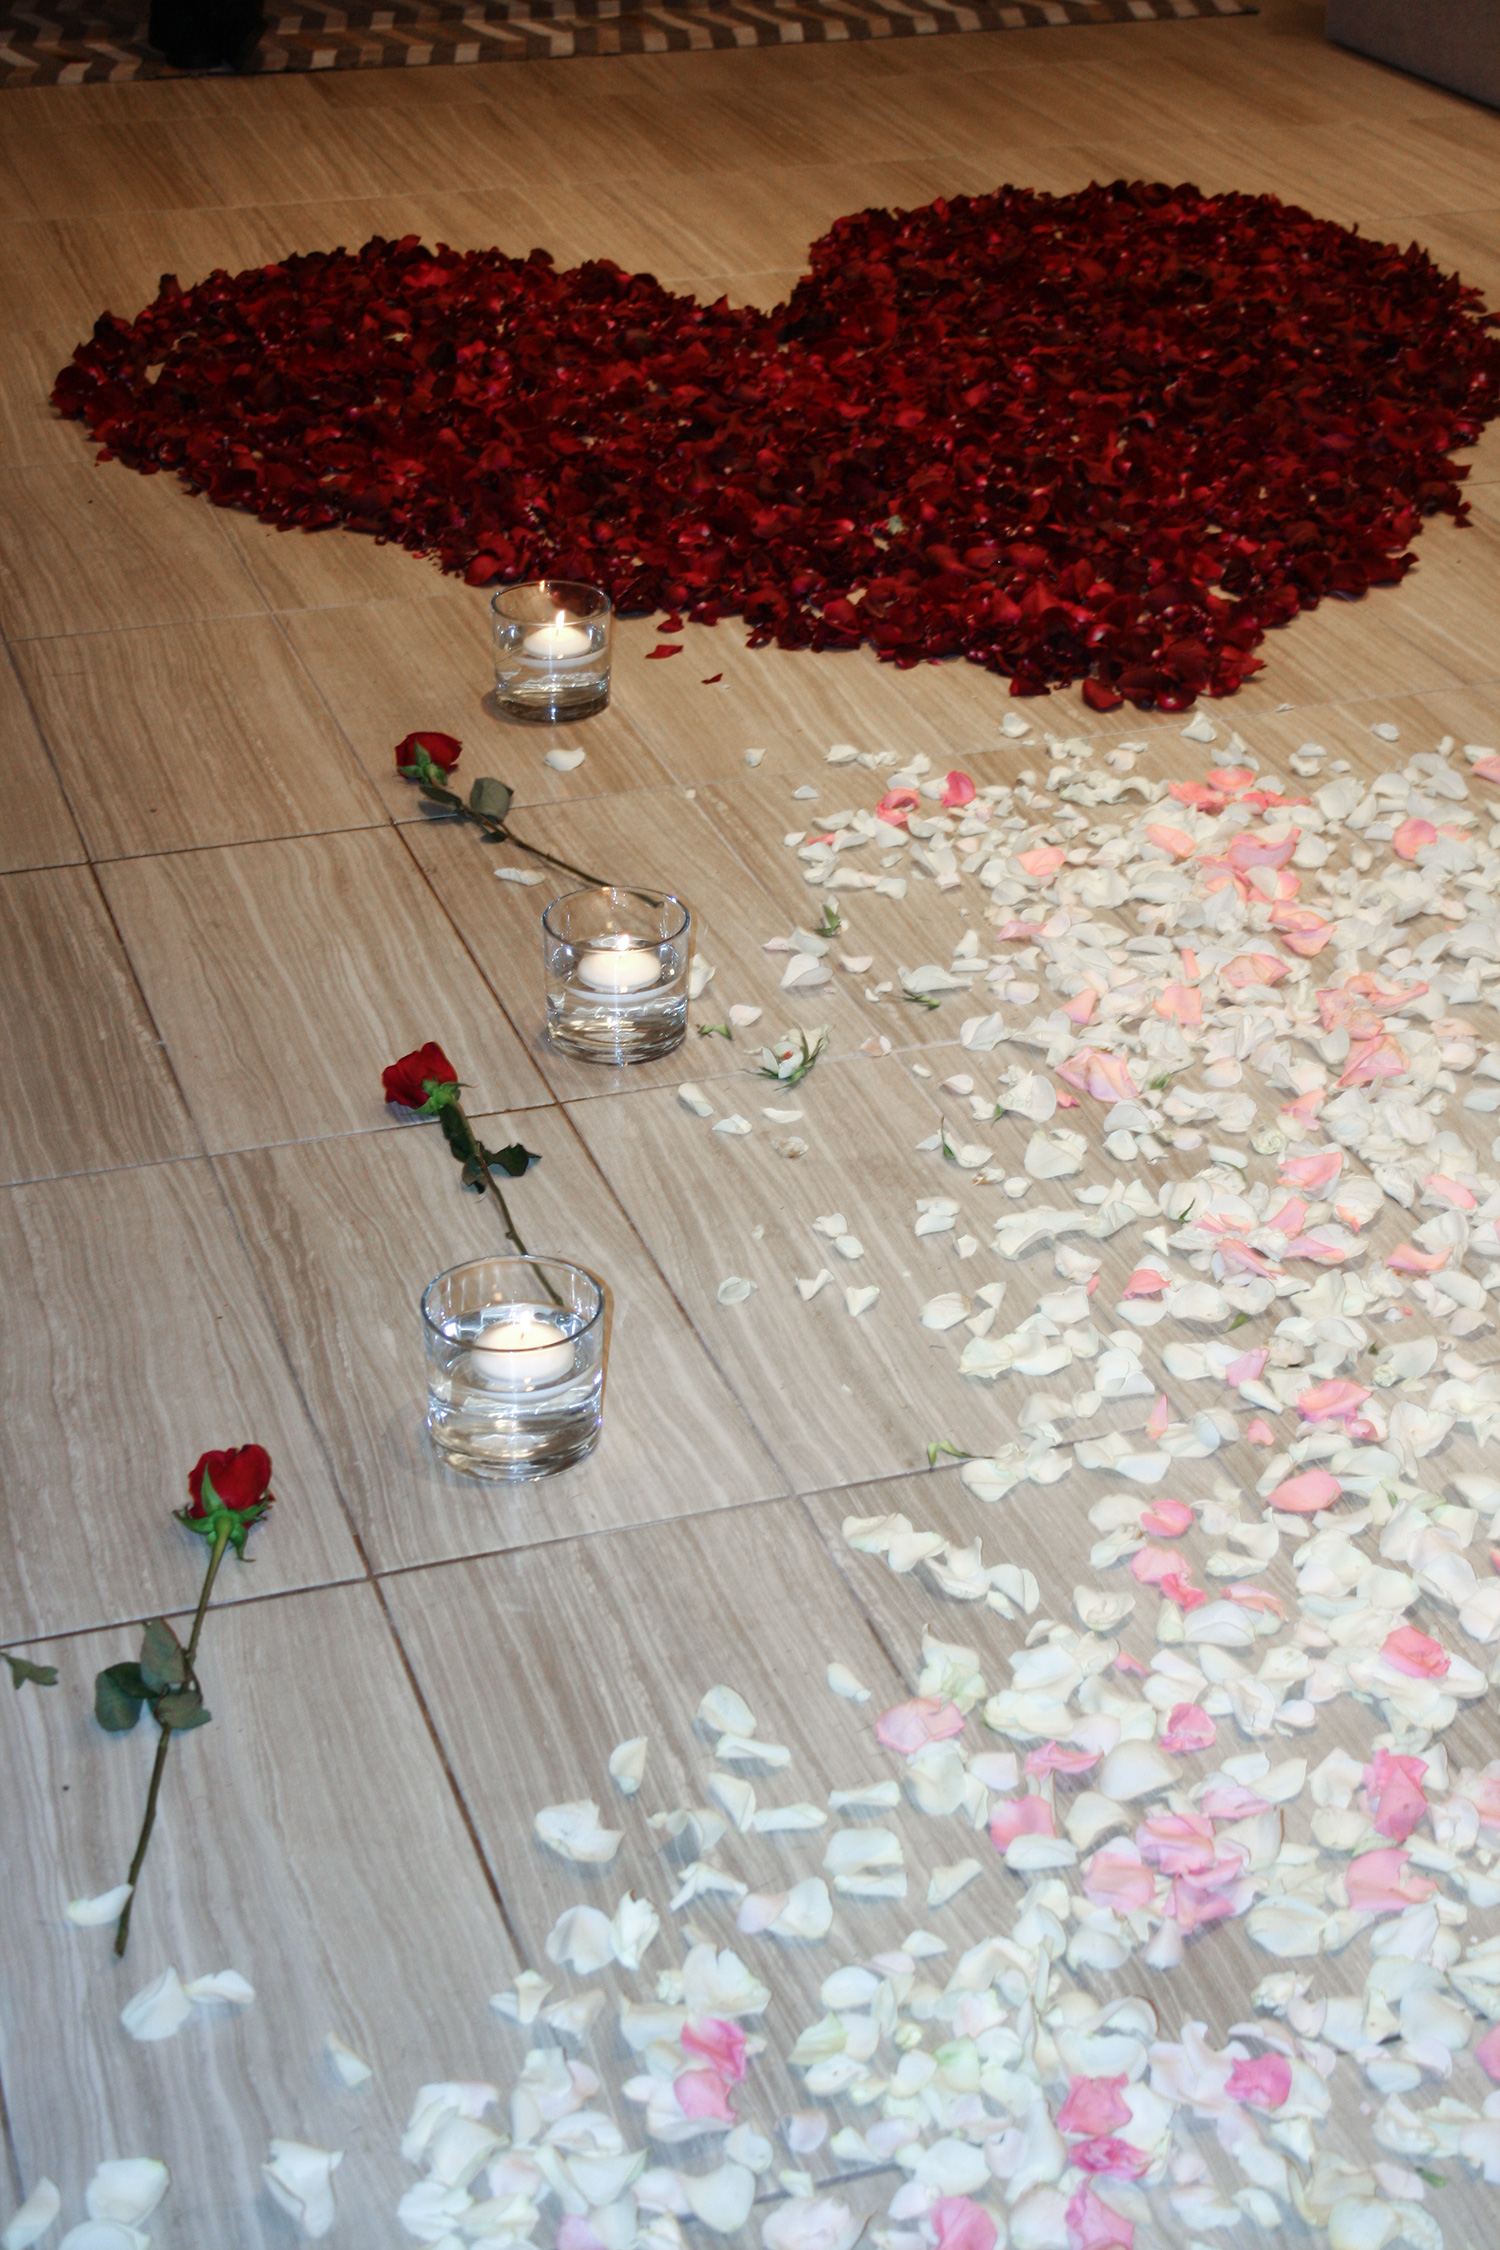 Proposal Rose Pedals on Floor